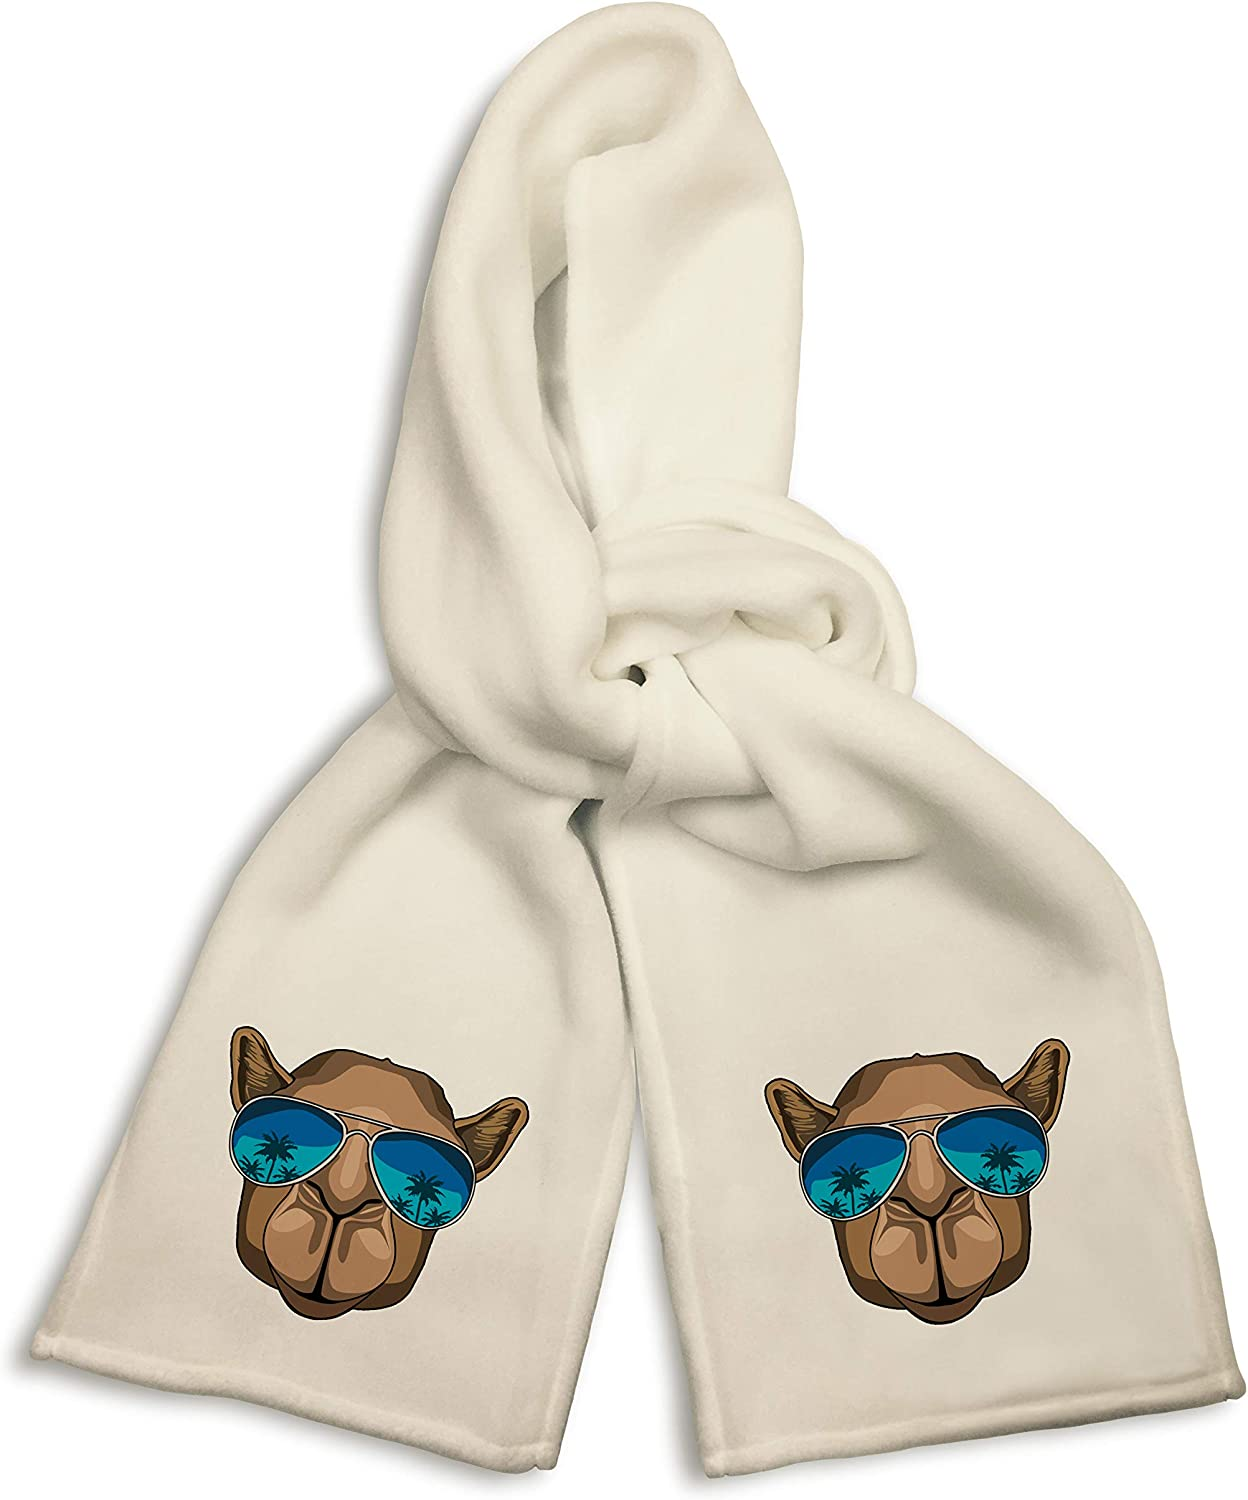 White Winter Scarf - Camel Wearing Sunglasses Palm Tree Reflection